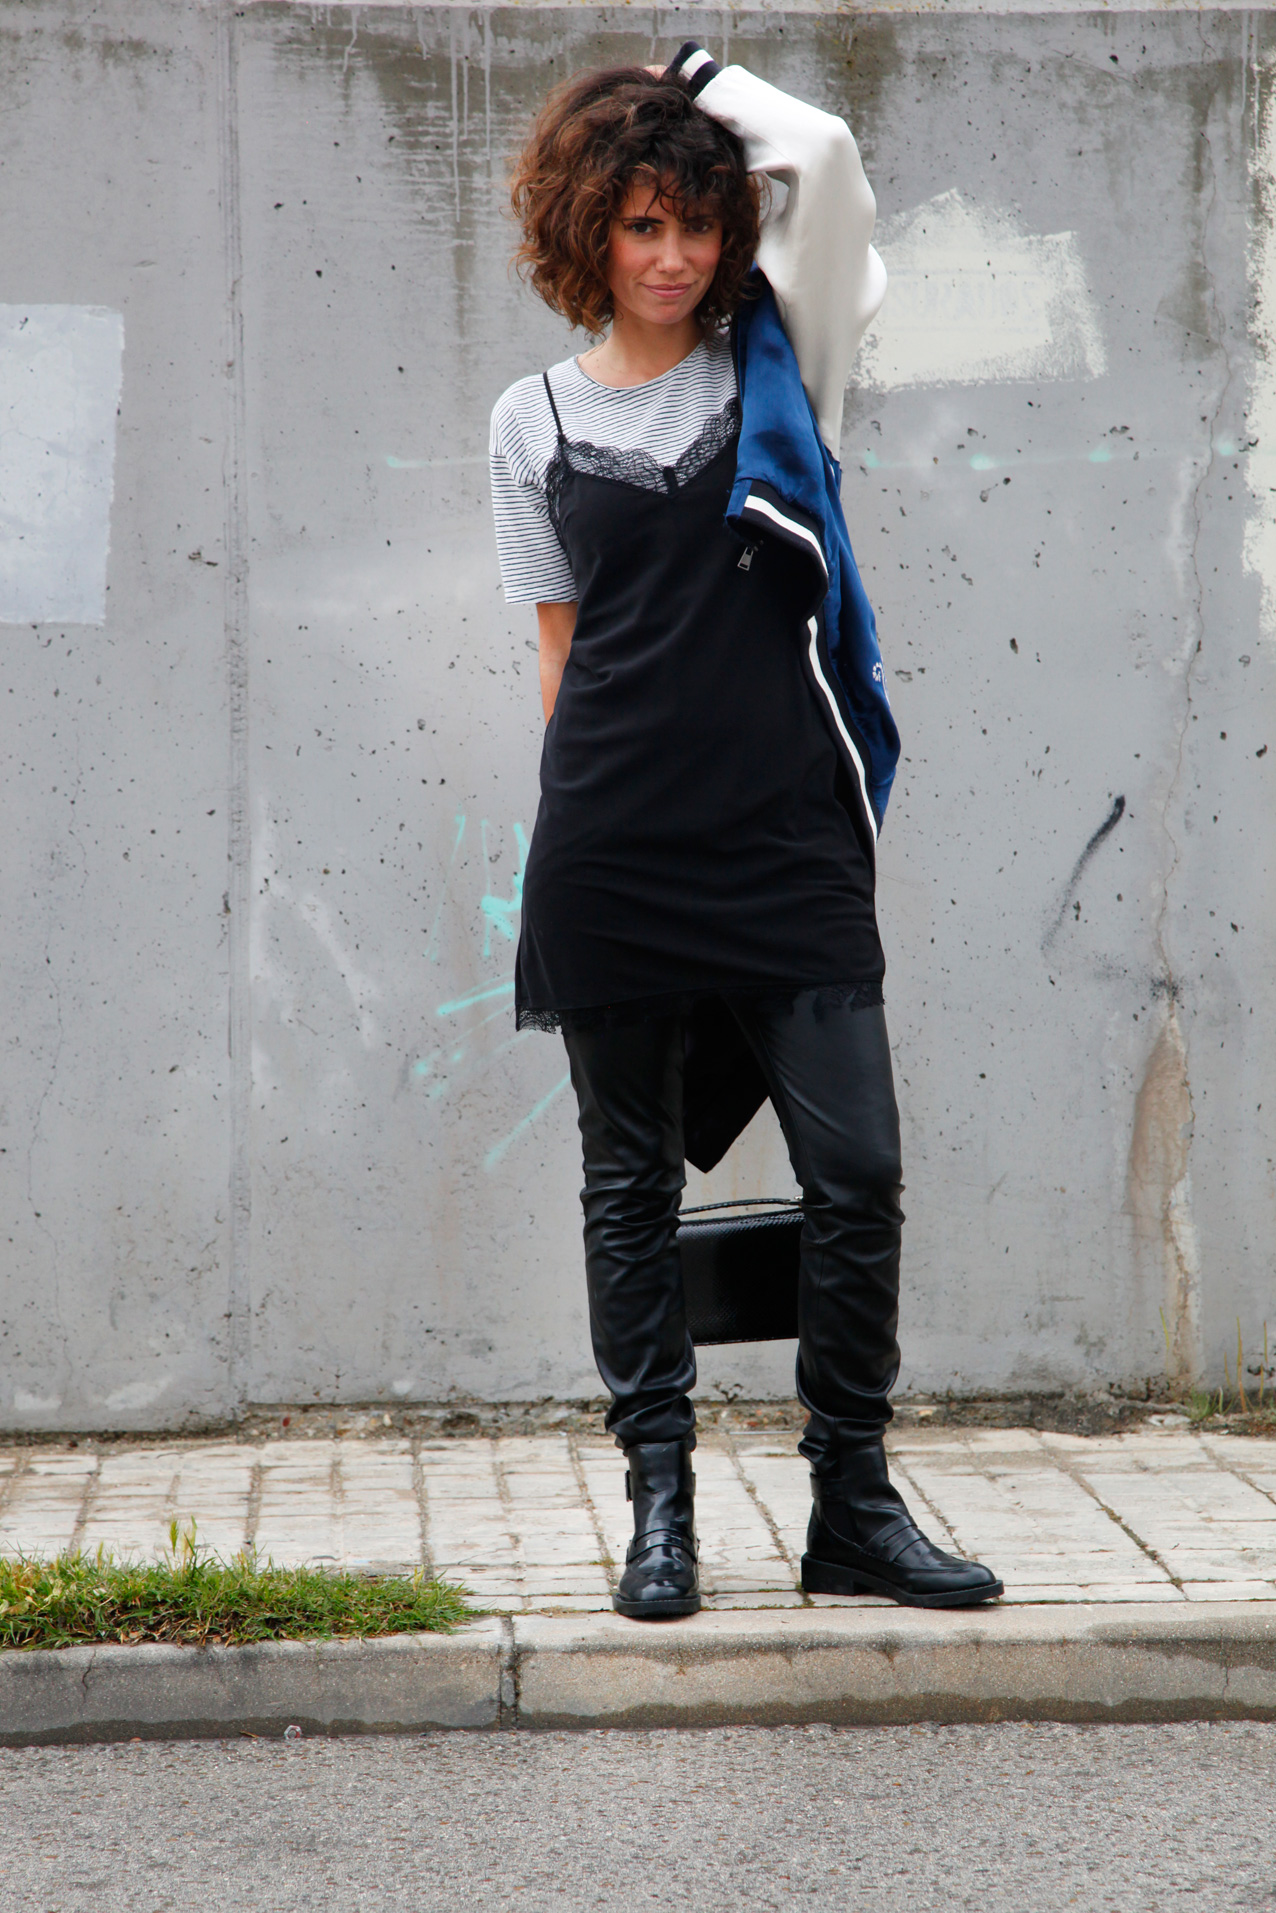 slipdress_tshirt-rocker-cool_lemonade_streetstyle